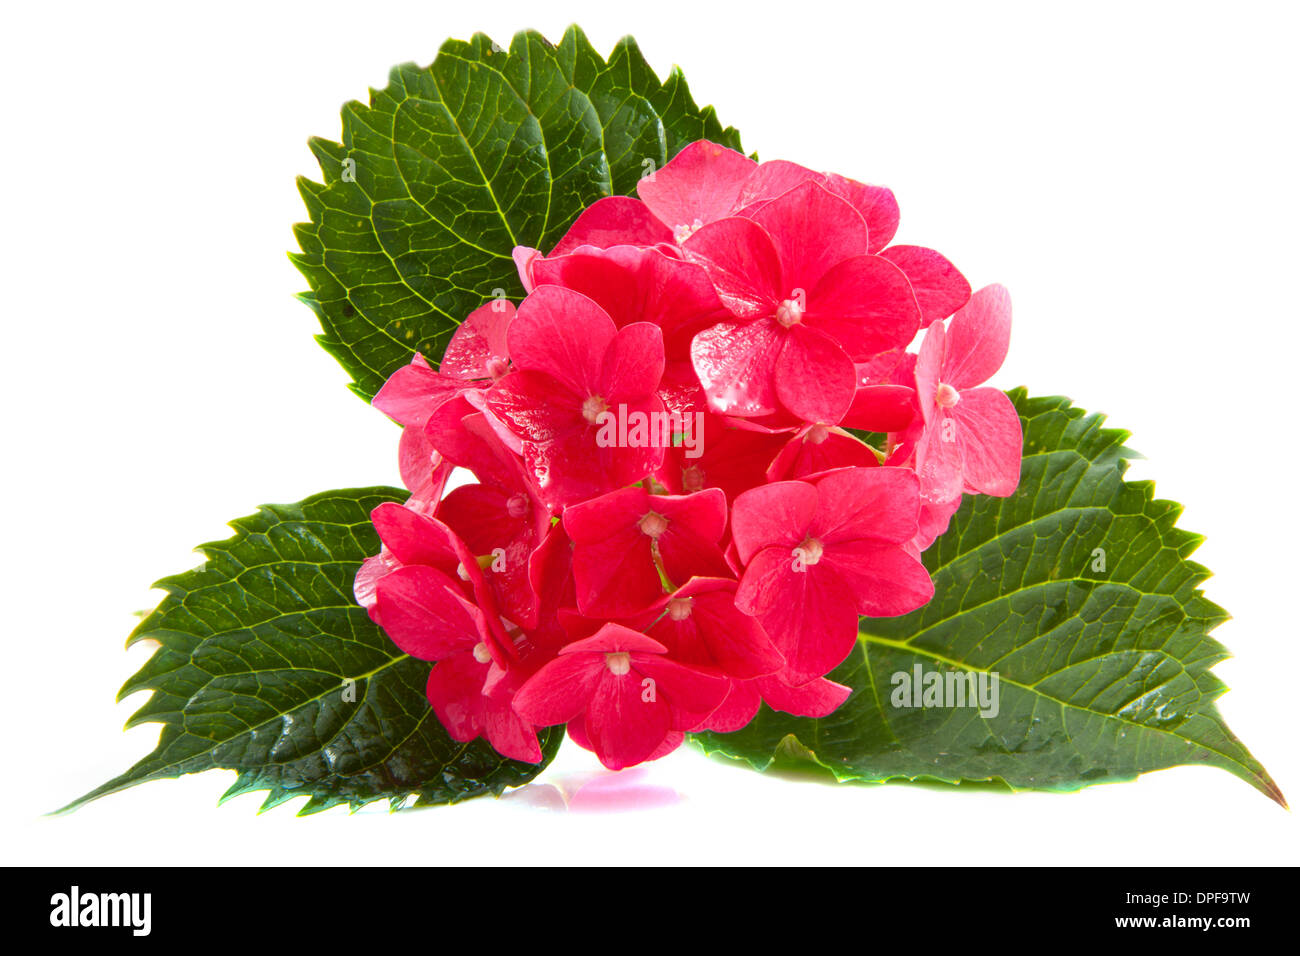 Hydrangea Macrophylla Cut Out Stock Images & Pictures - Alamy